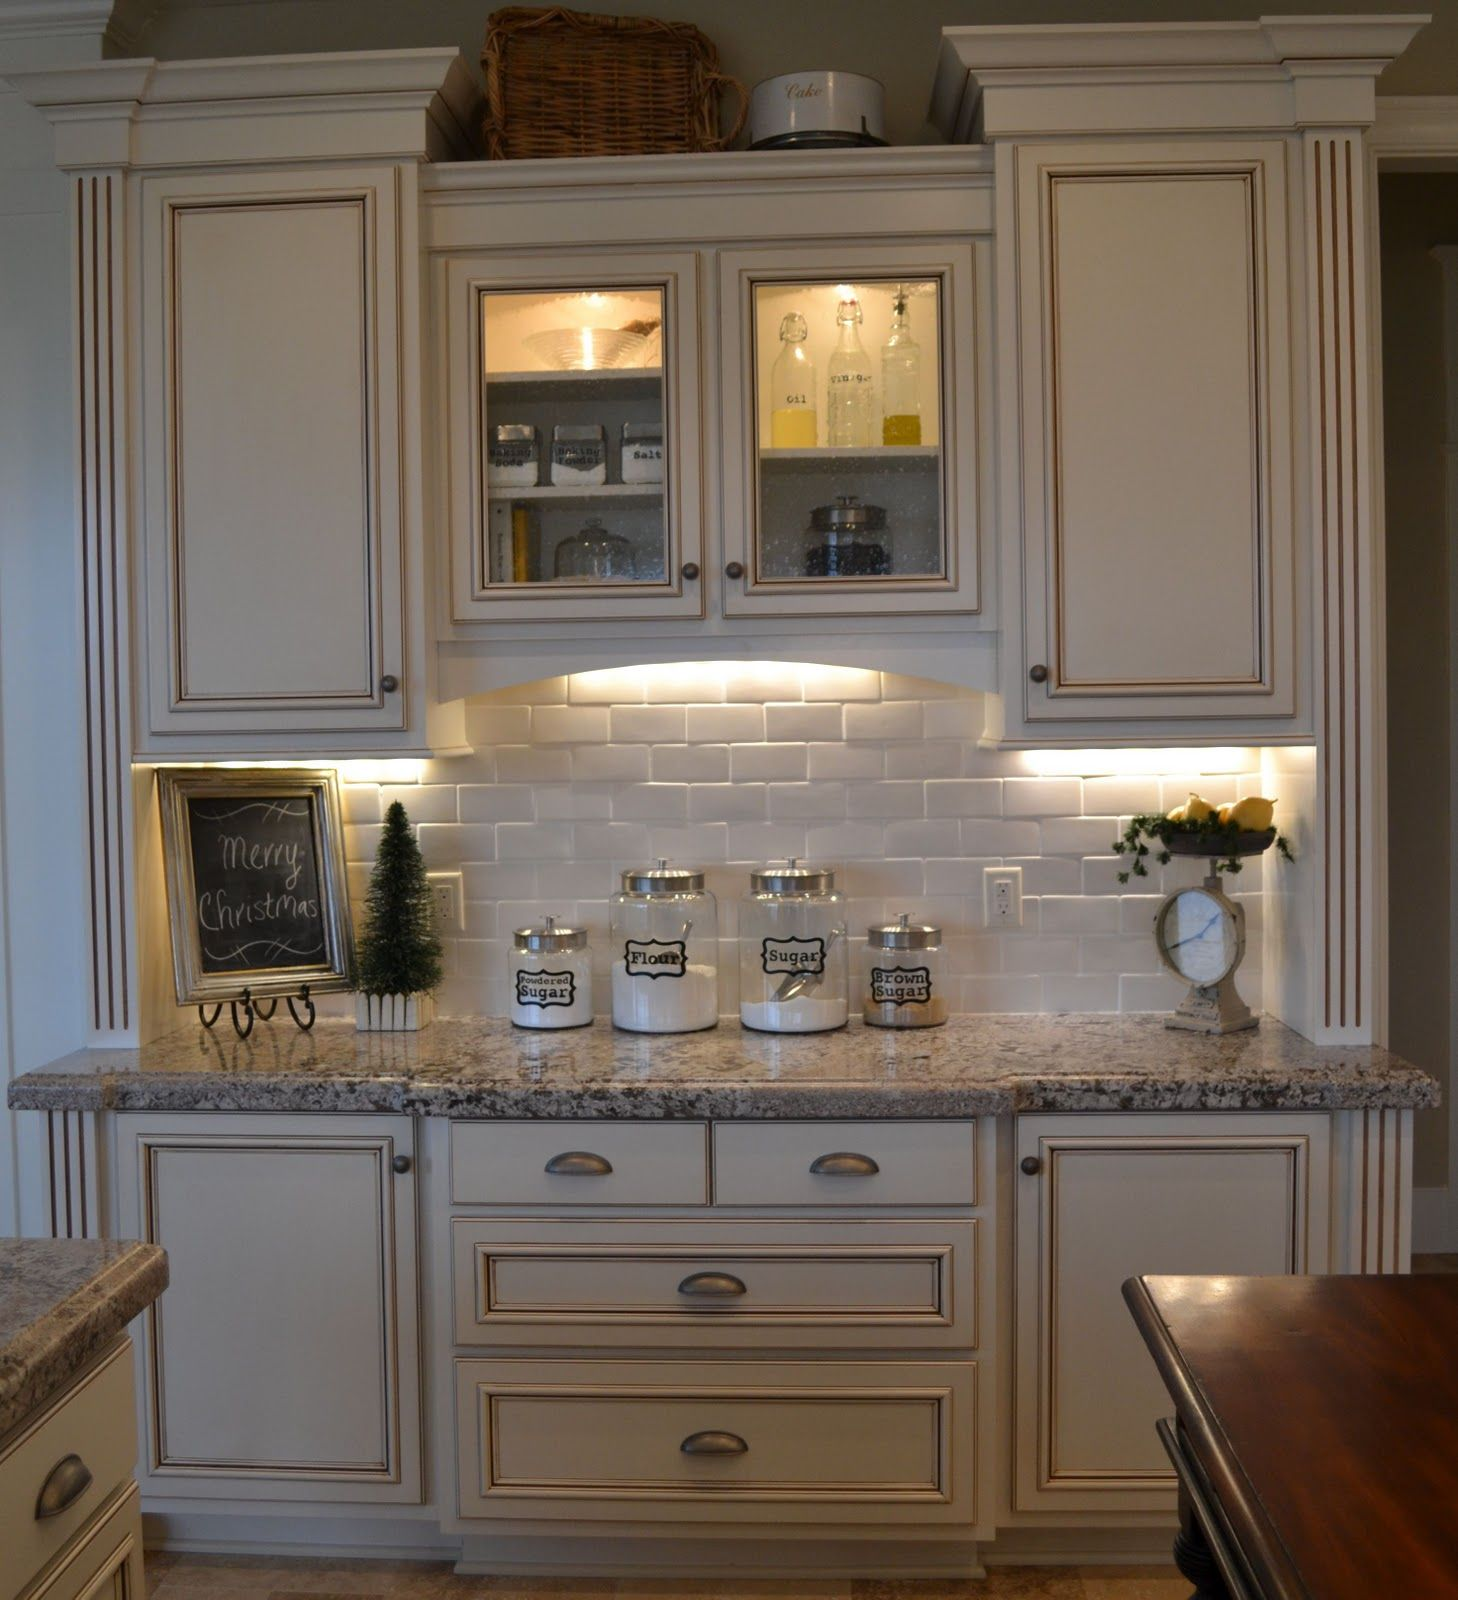 """Kitchen Cabinet Hutch Ideas: """"Baking Center"""" Type Of Area. The Little Valance In The"""